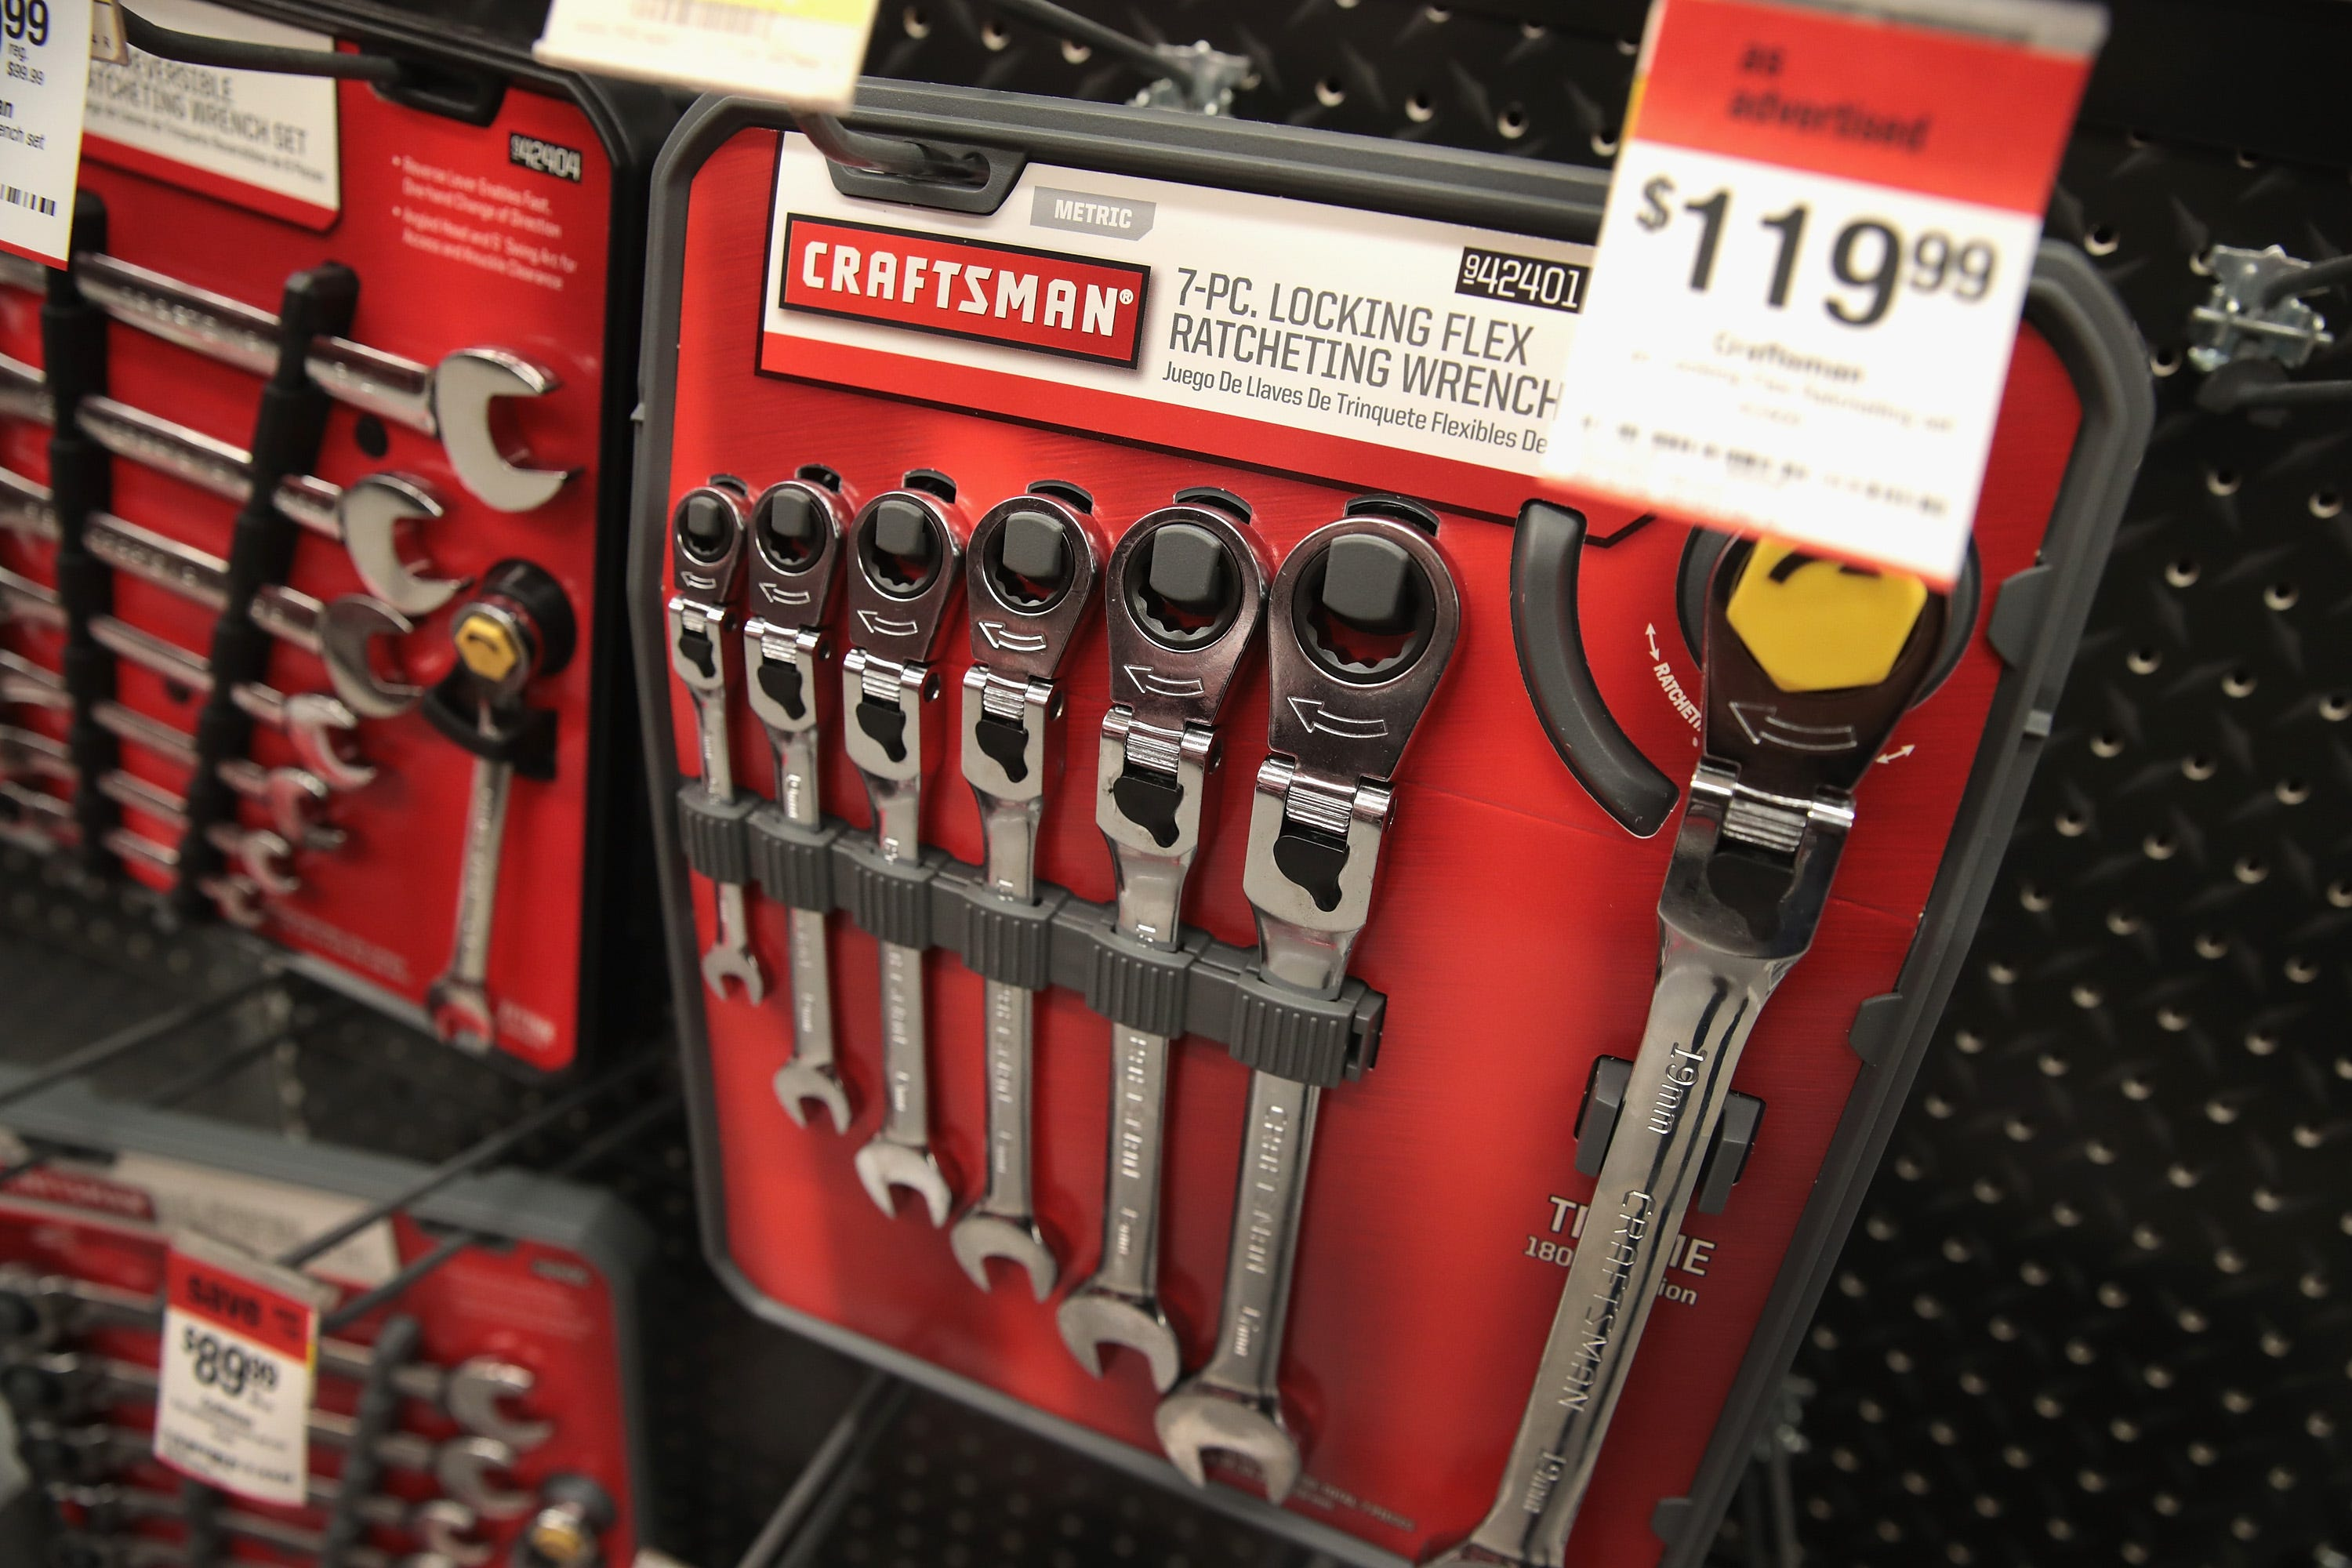 wbir.com | Lowe's to offer former Sears brand Craftsman tools in ...